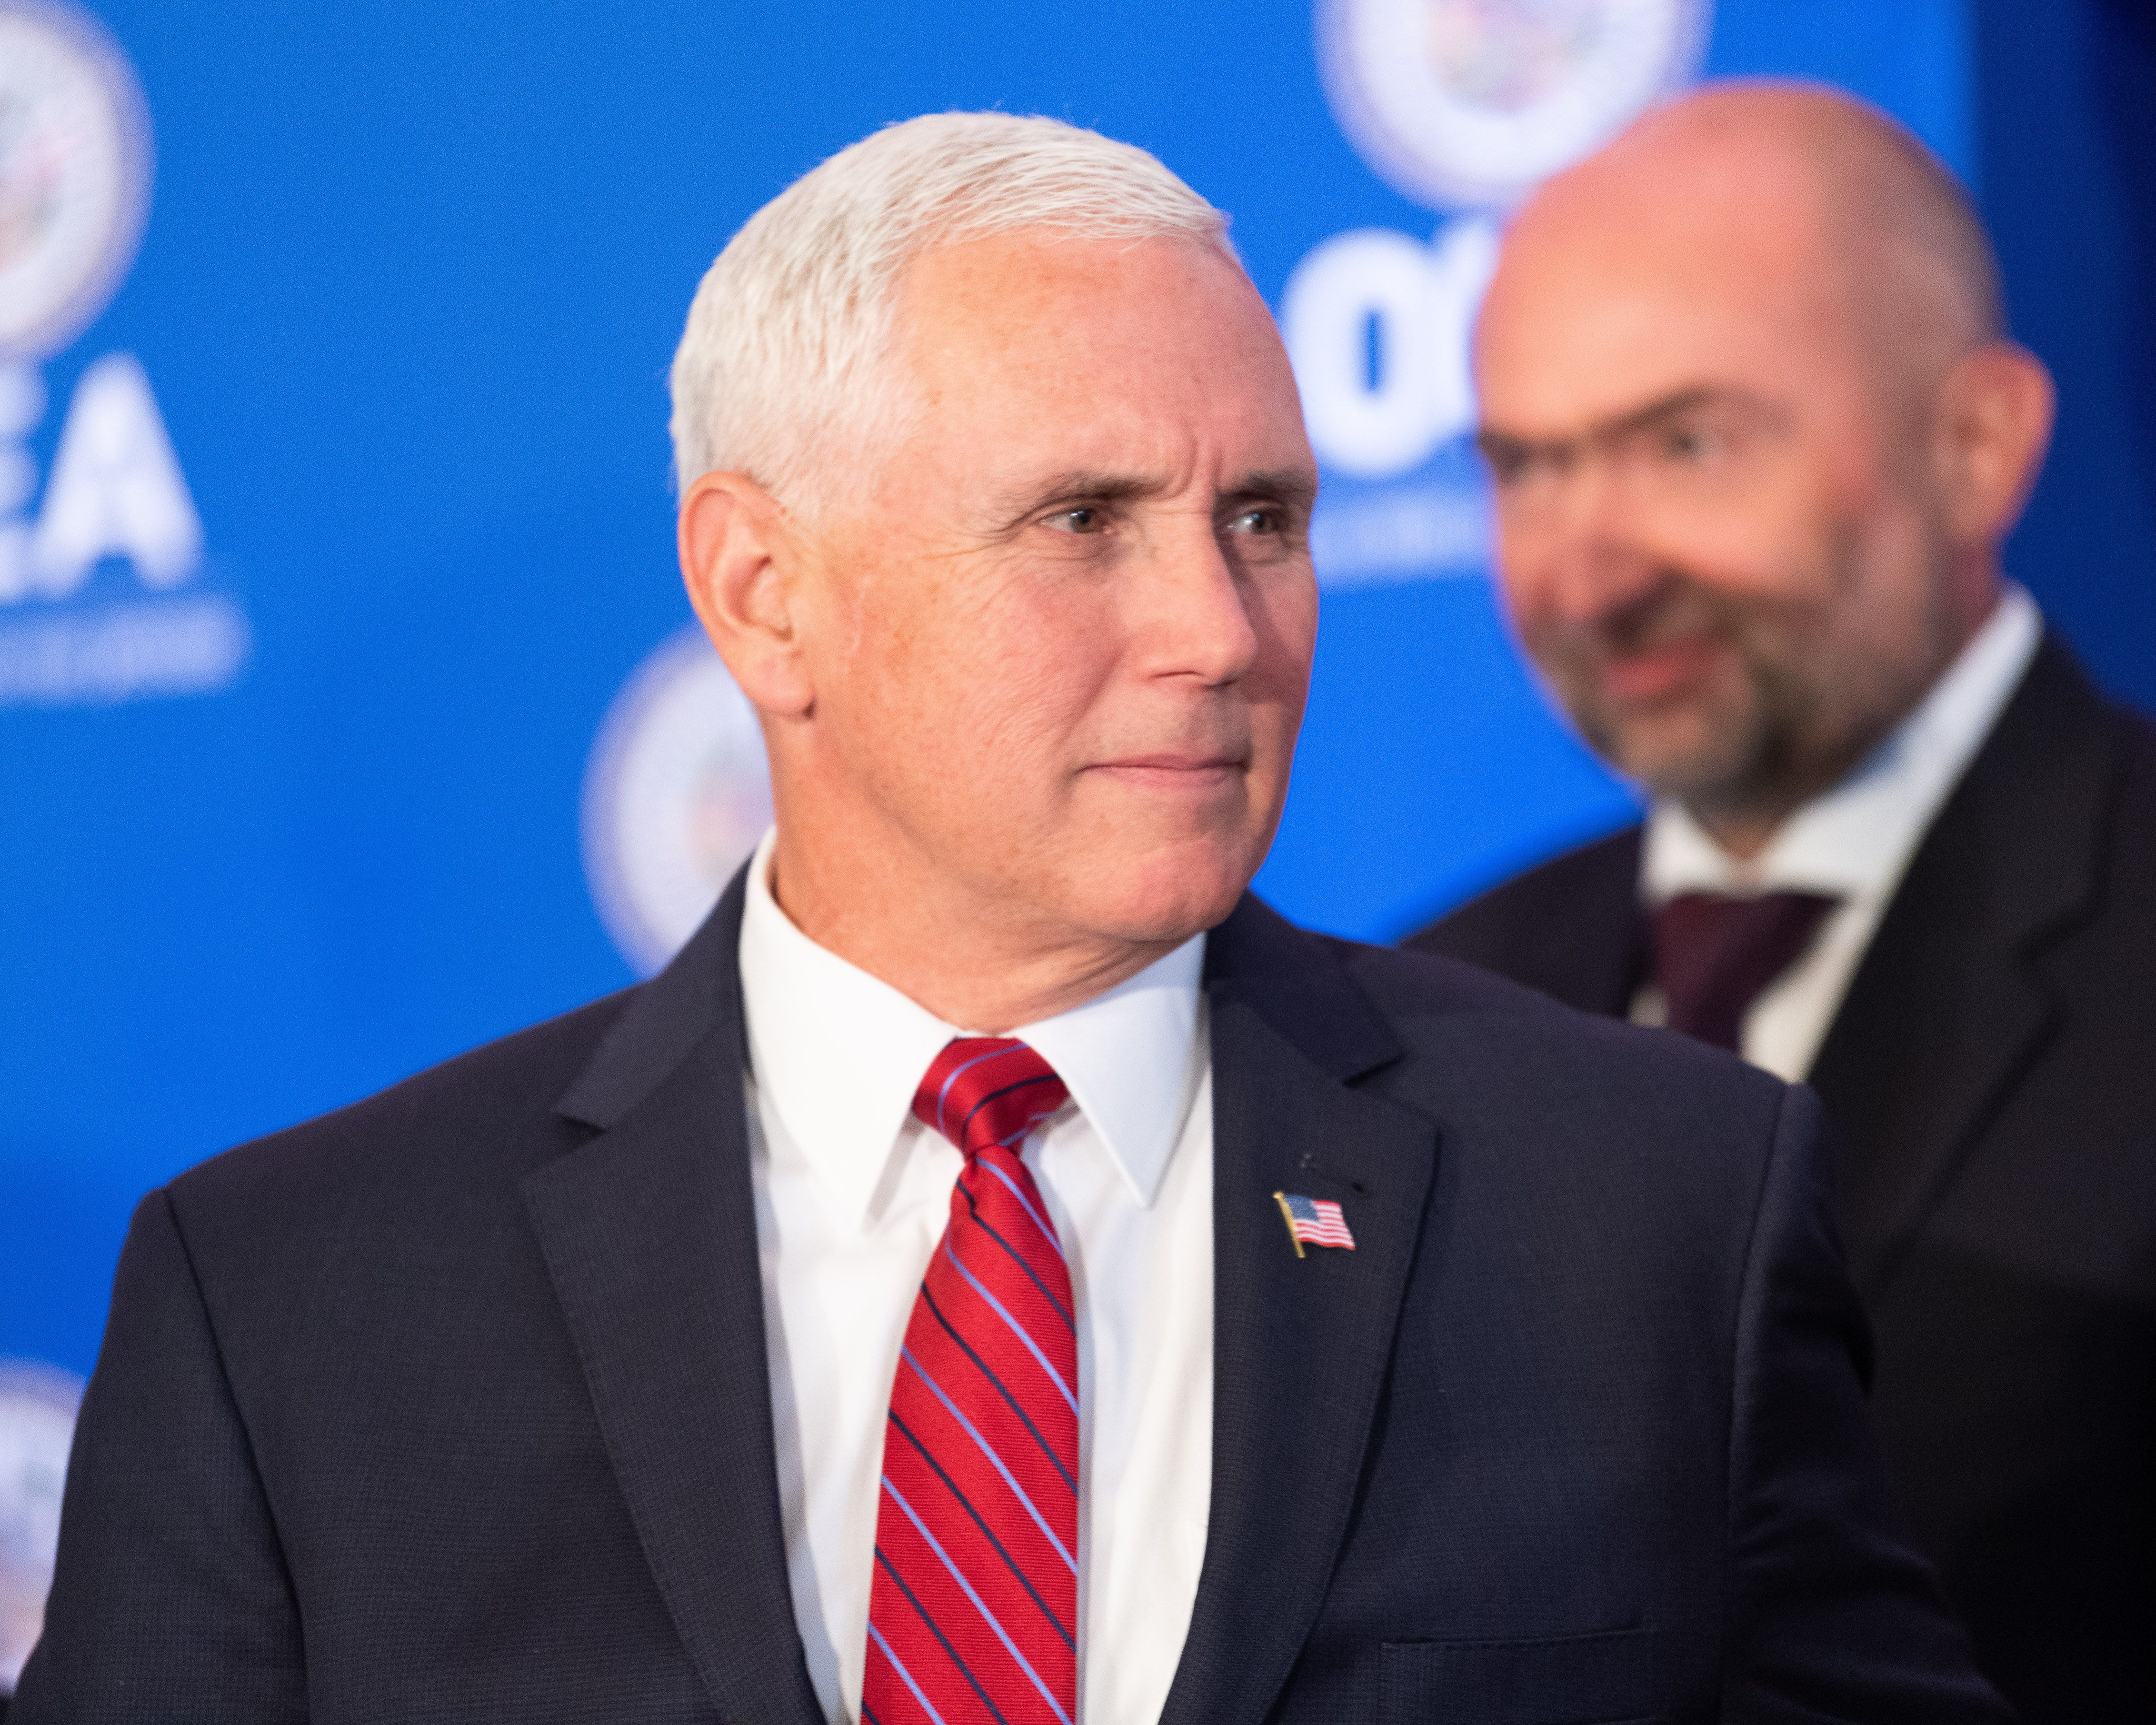 U.S. Vice President Mike Pence at the Organization of American States in Washington, DC on May 7, 2018 (Photo by Michael Brochstein/Sipa USA)